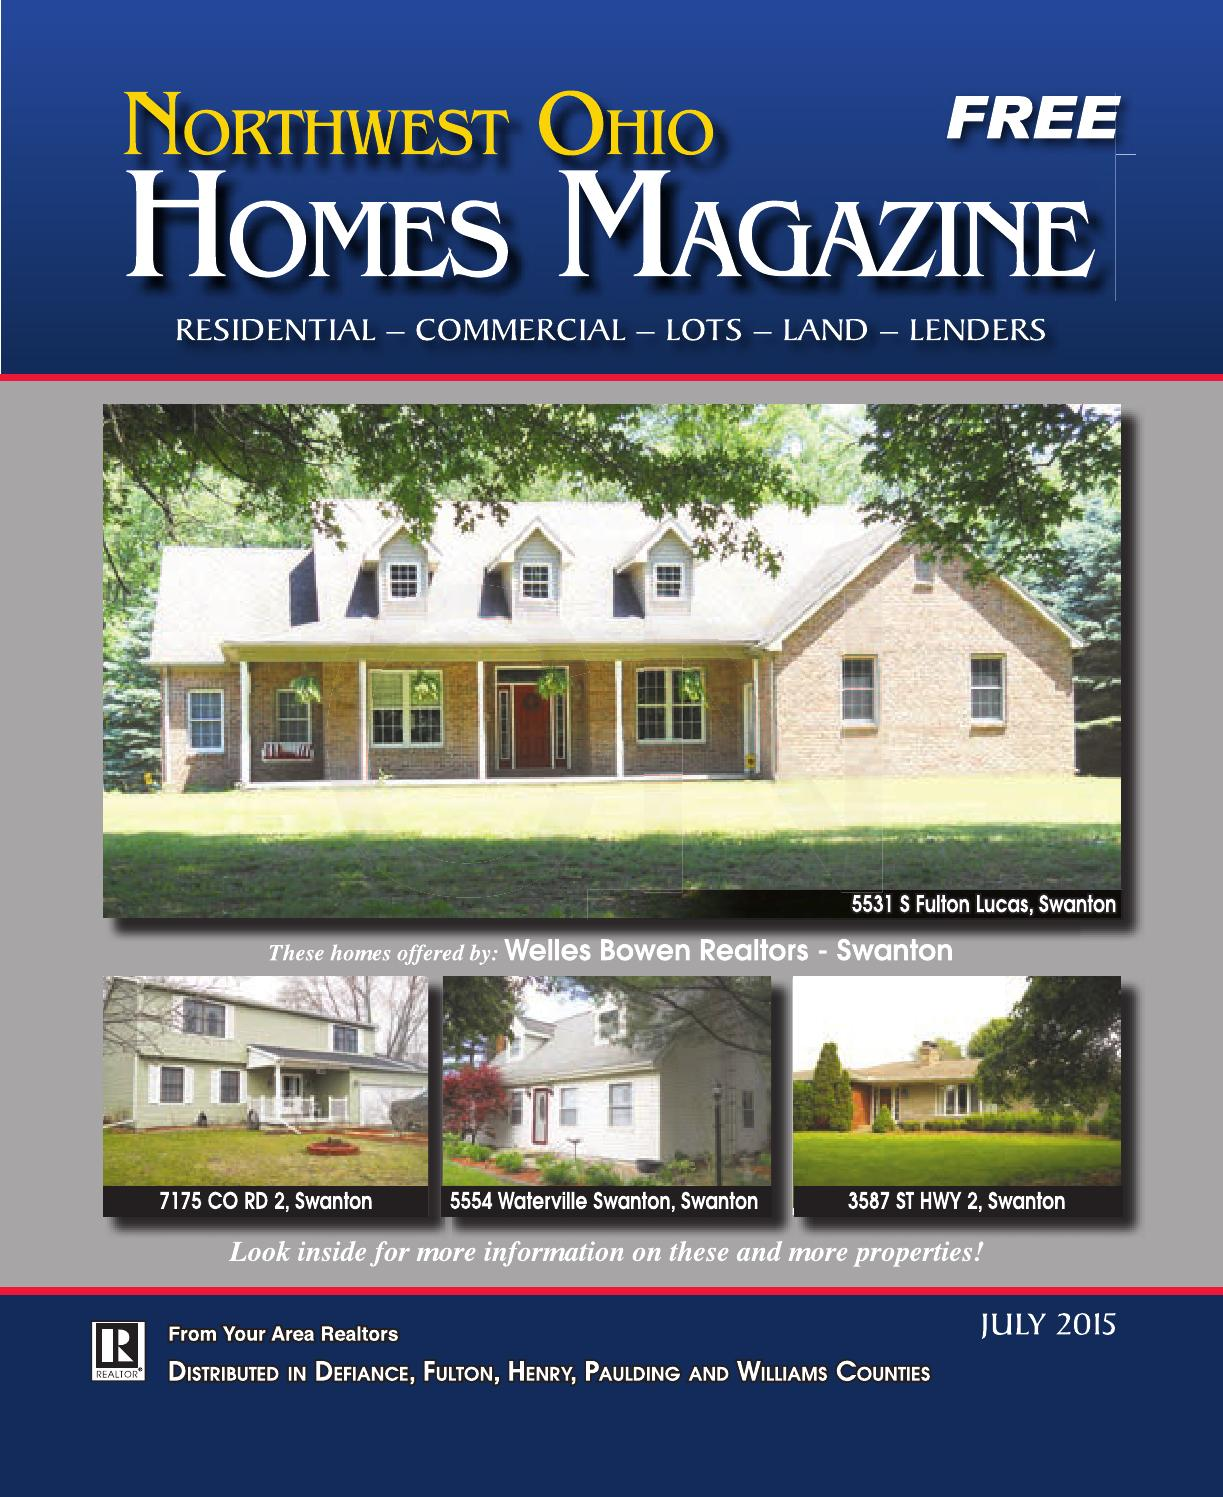 Northwest ohio homes magazine july 2015 by gatehouse media for Home builders in northwest ohio